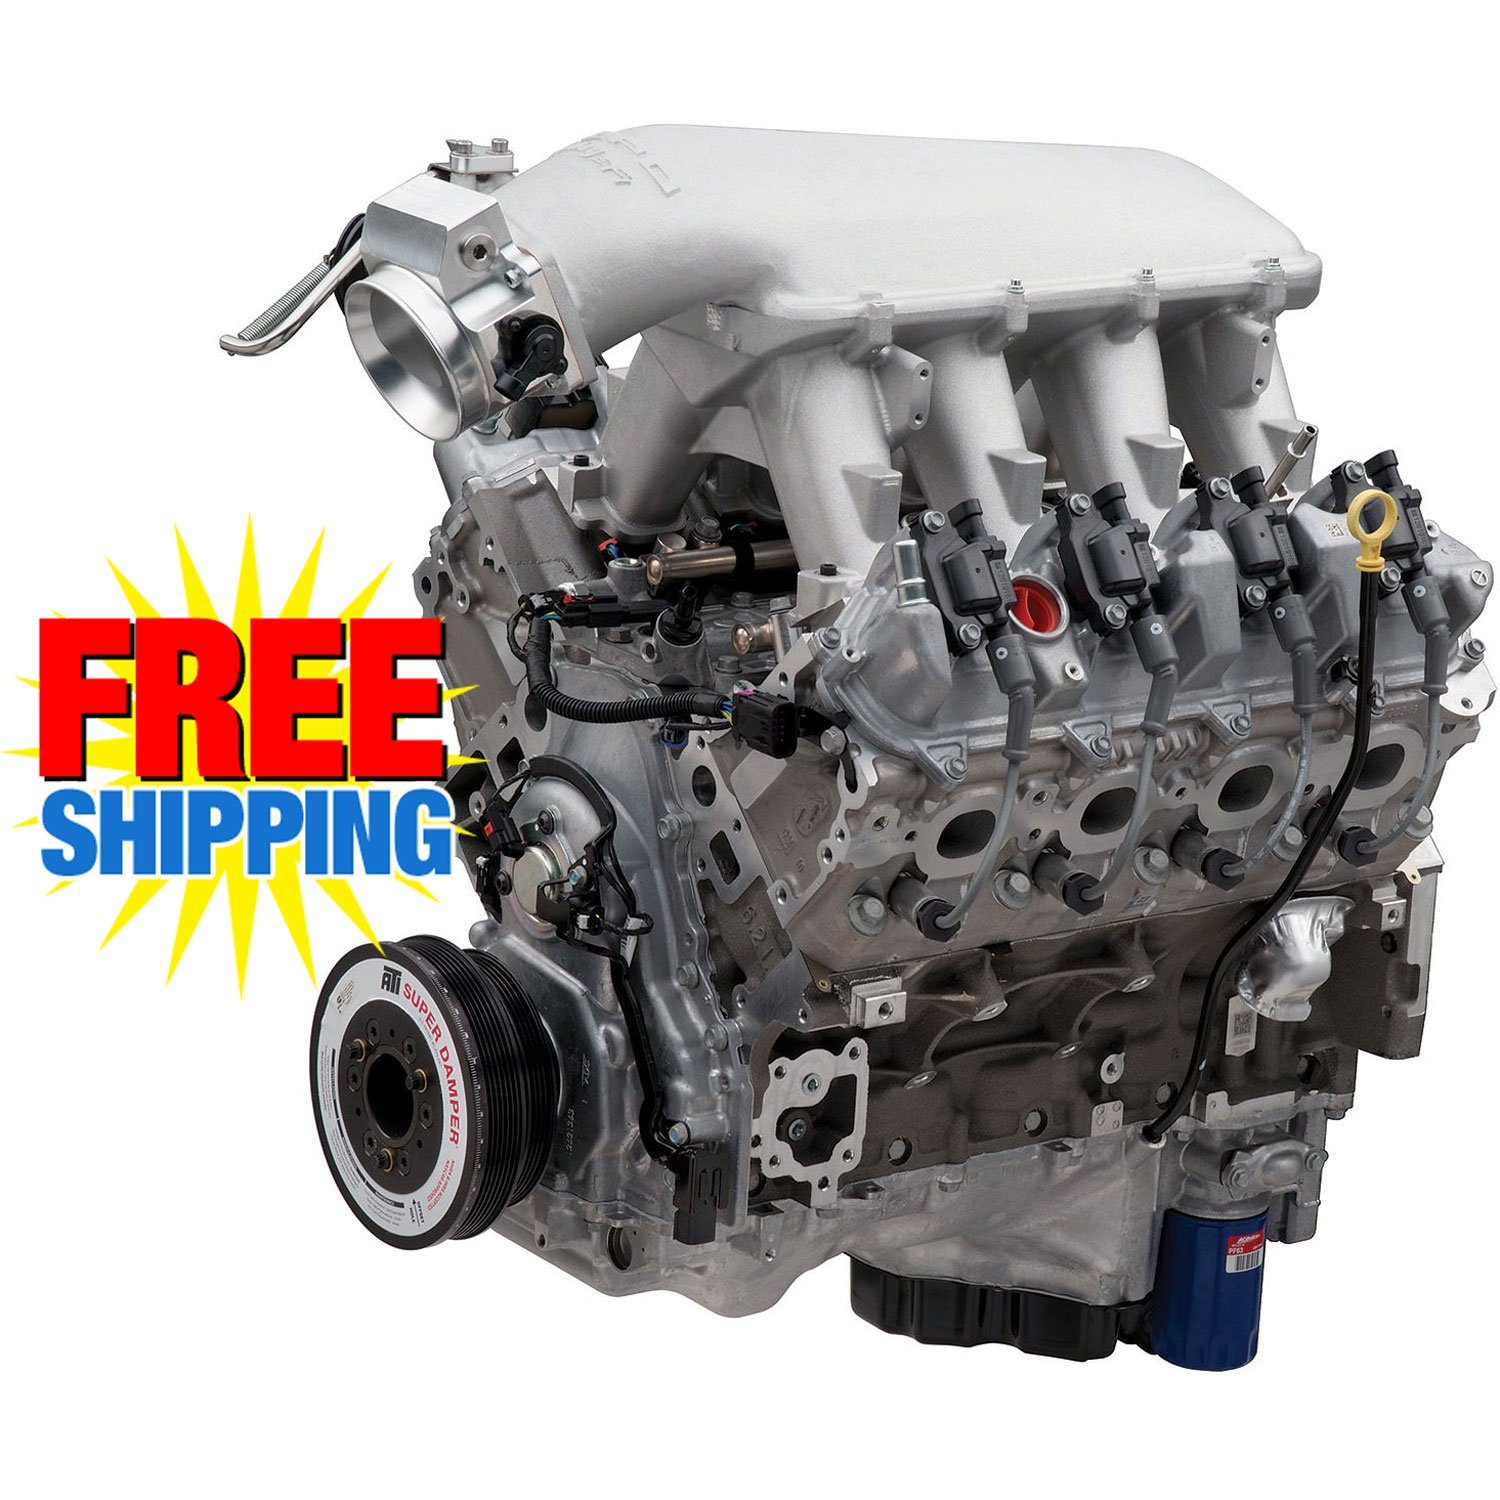 Chevy 2016 2017 6 2L 376ci 410hp COPO LT Crate Engine